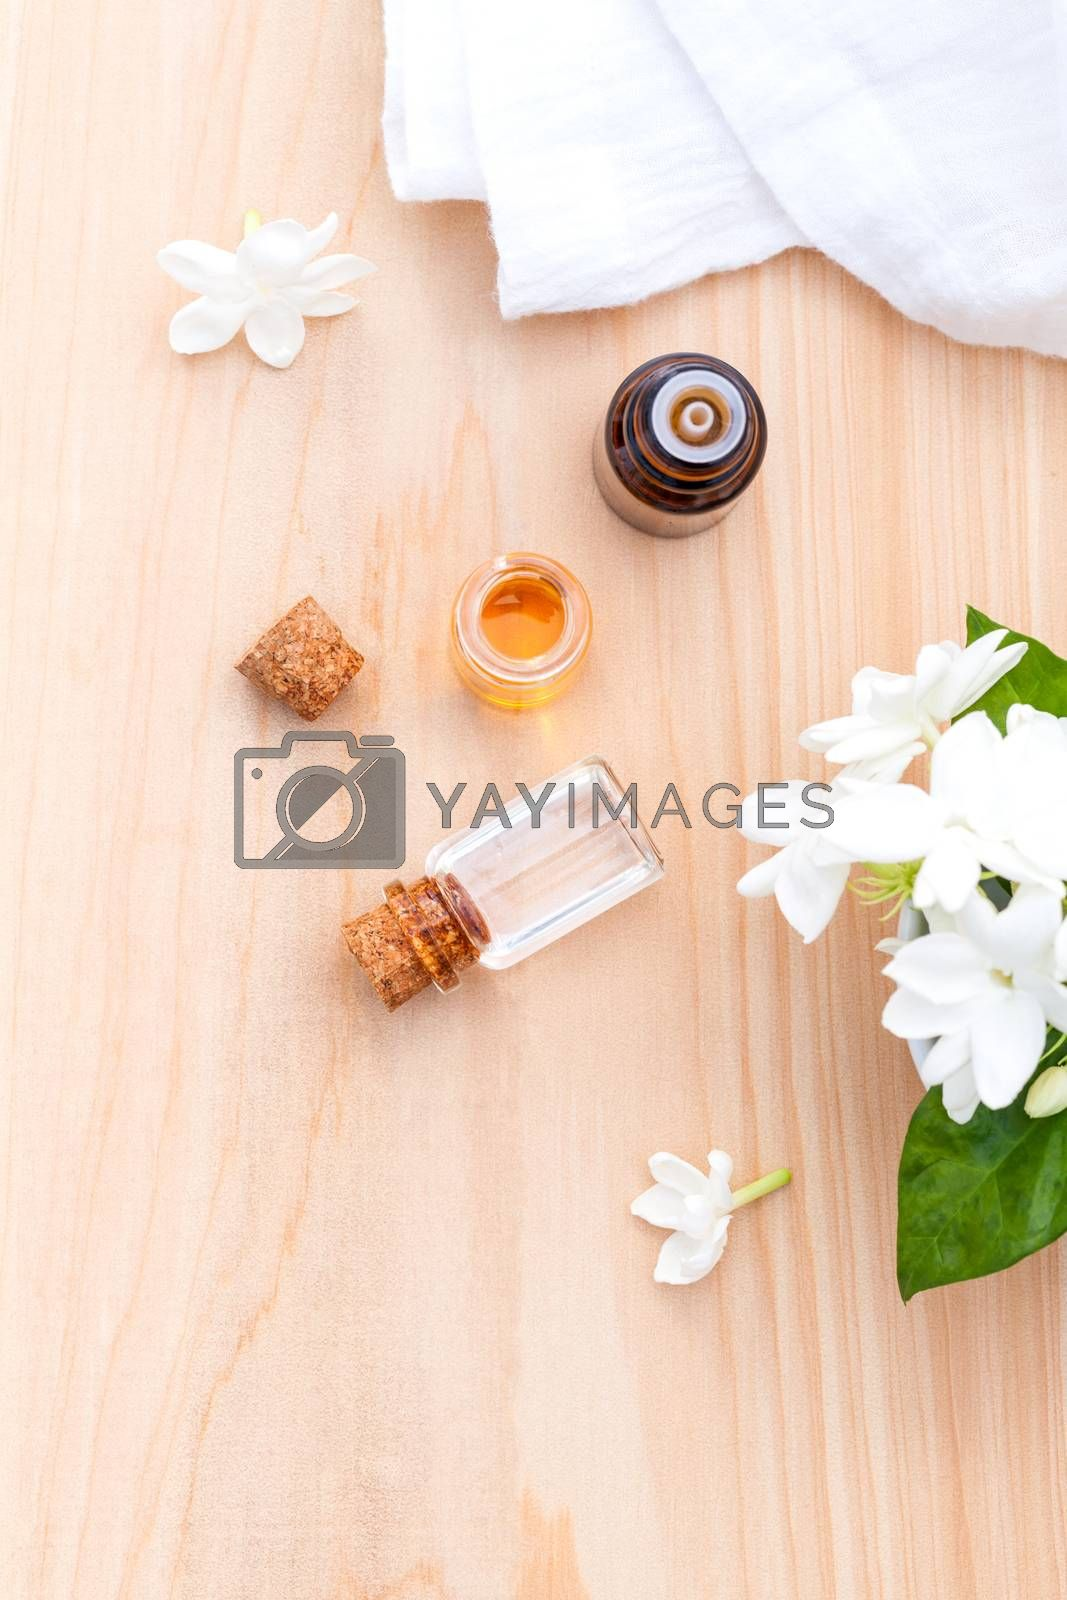 Royalty free image of Aroma oil bottles arranged with jasmine flowers on wooden backgr by kerdkanno